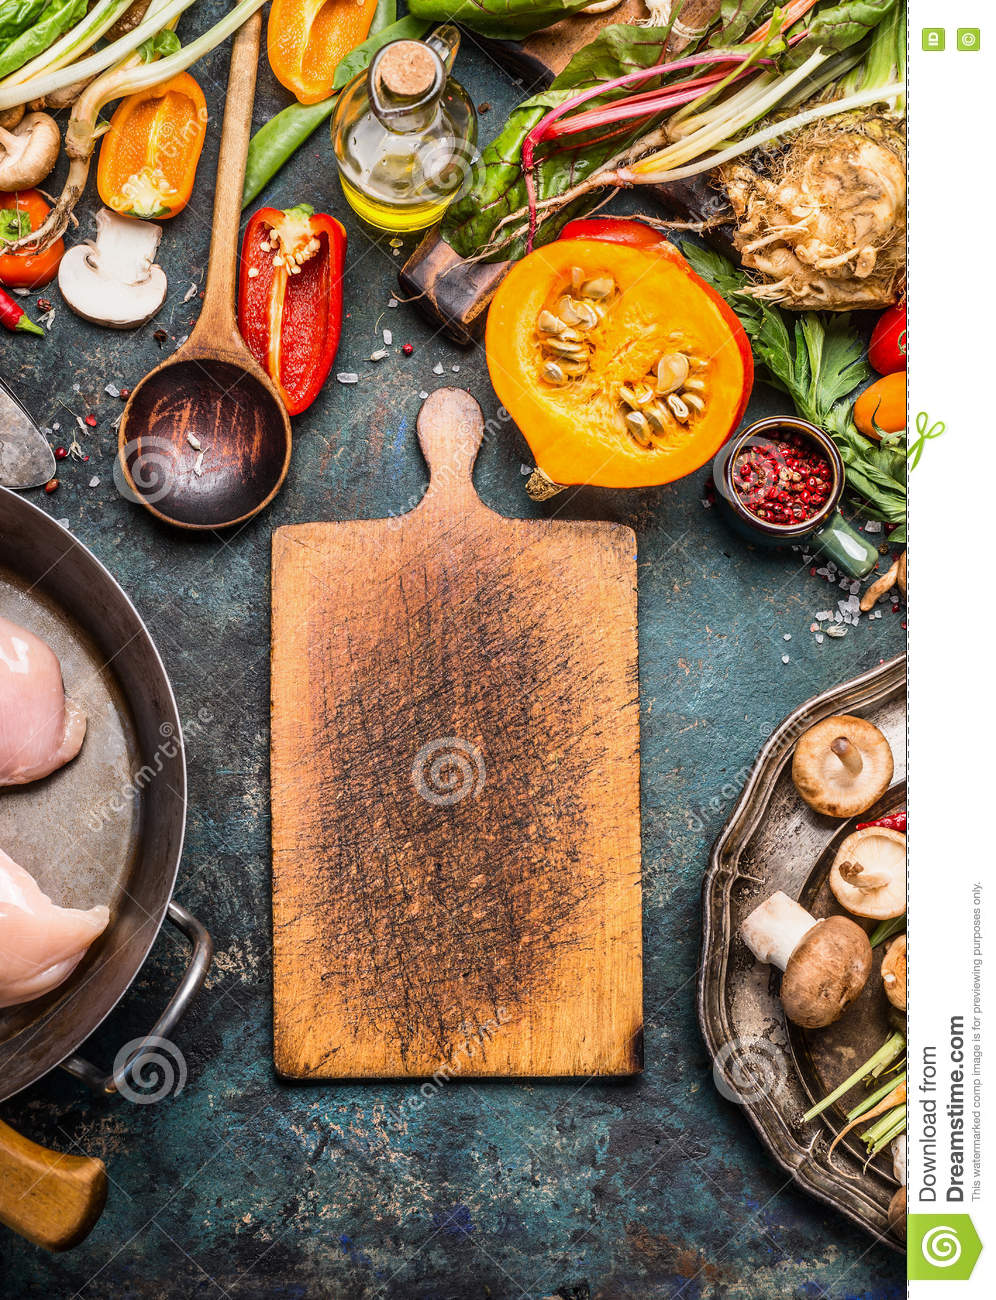 Blank rustic cutting board and Pumpkin with organic vegetables ingredients for tasty cooking on dark kitchen table